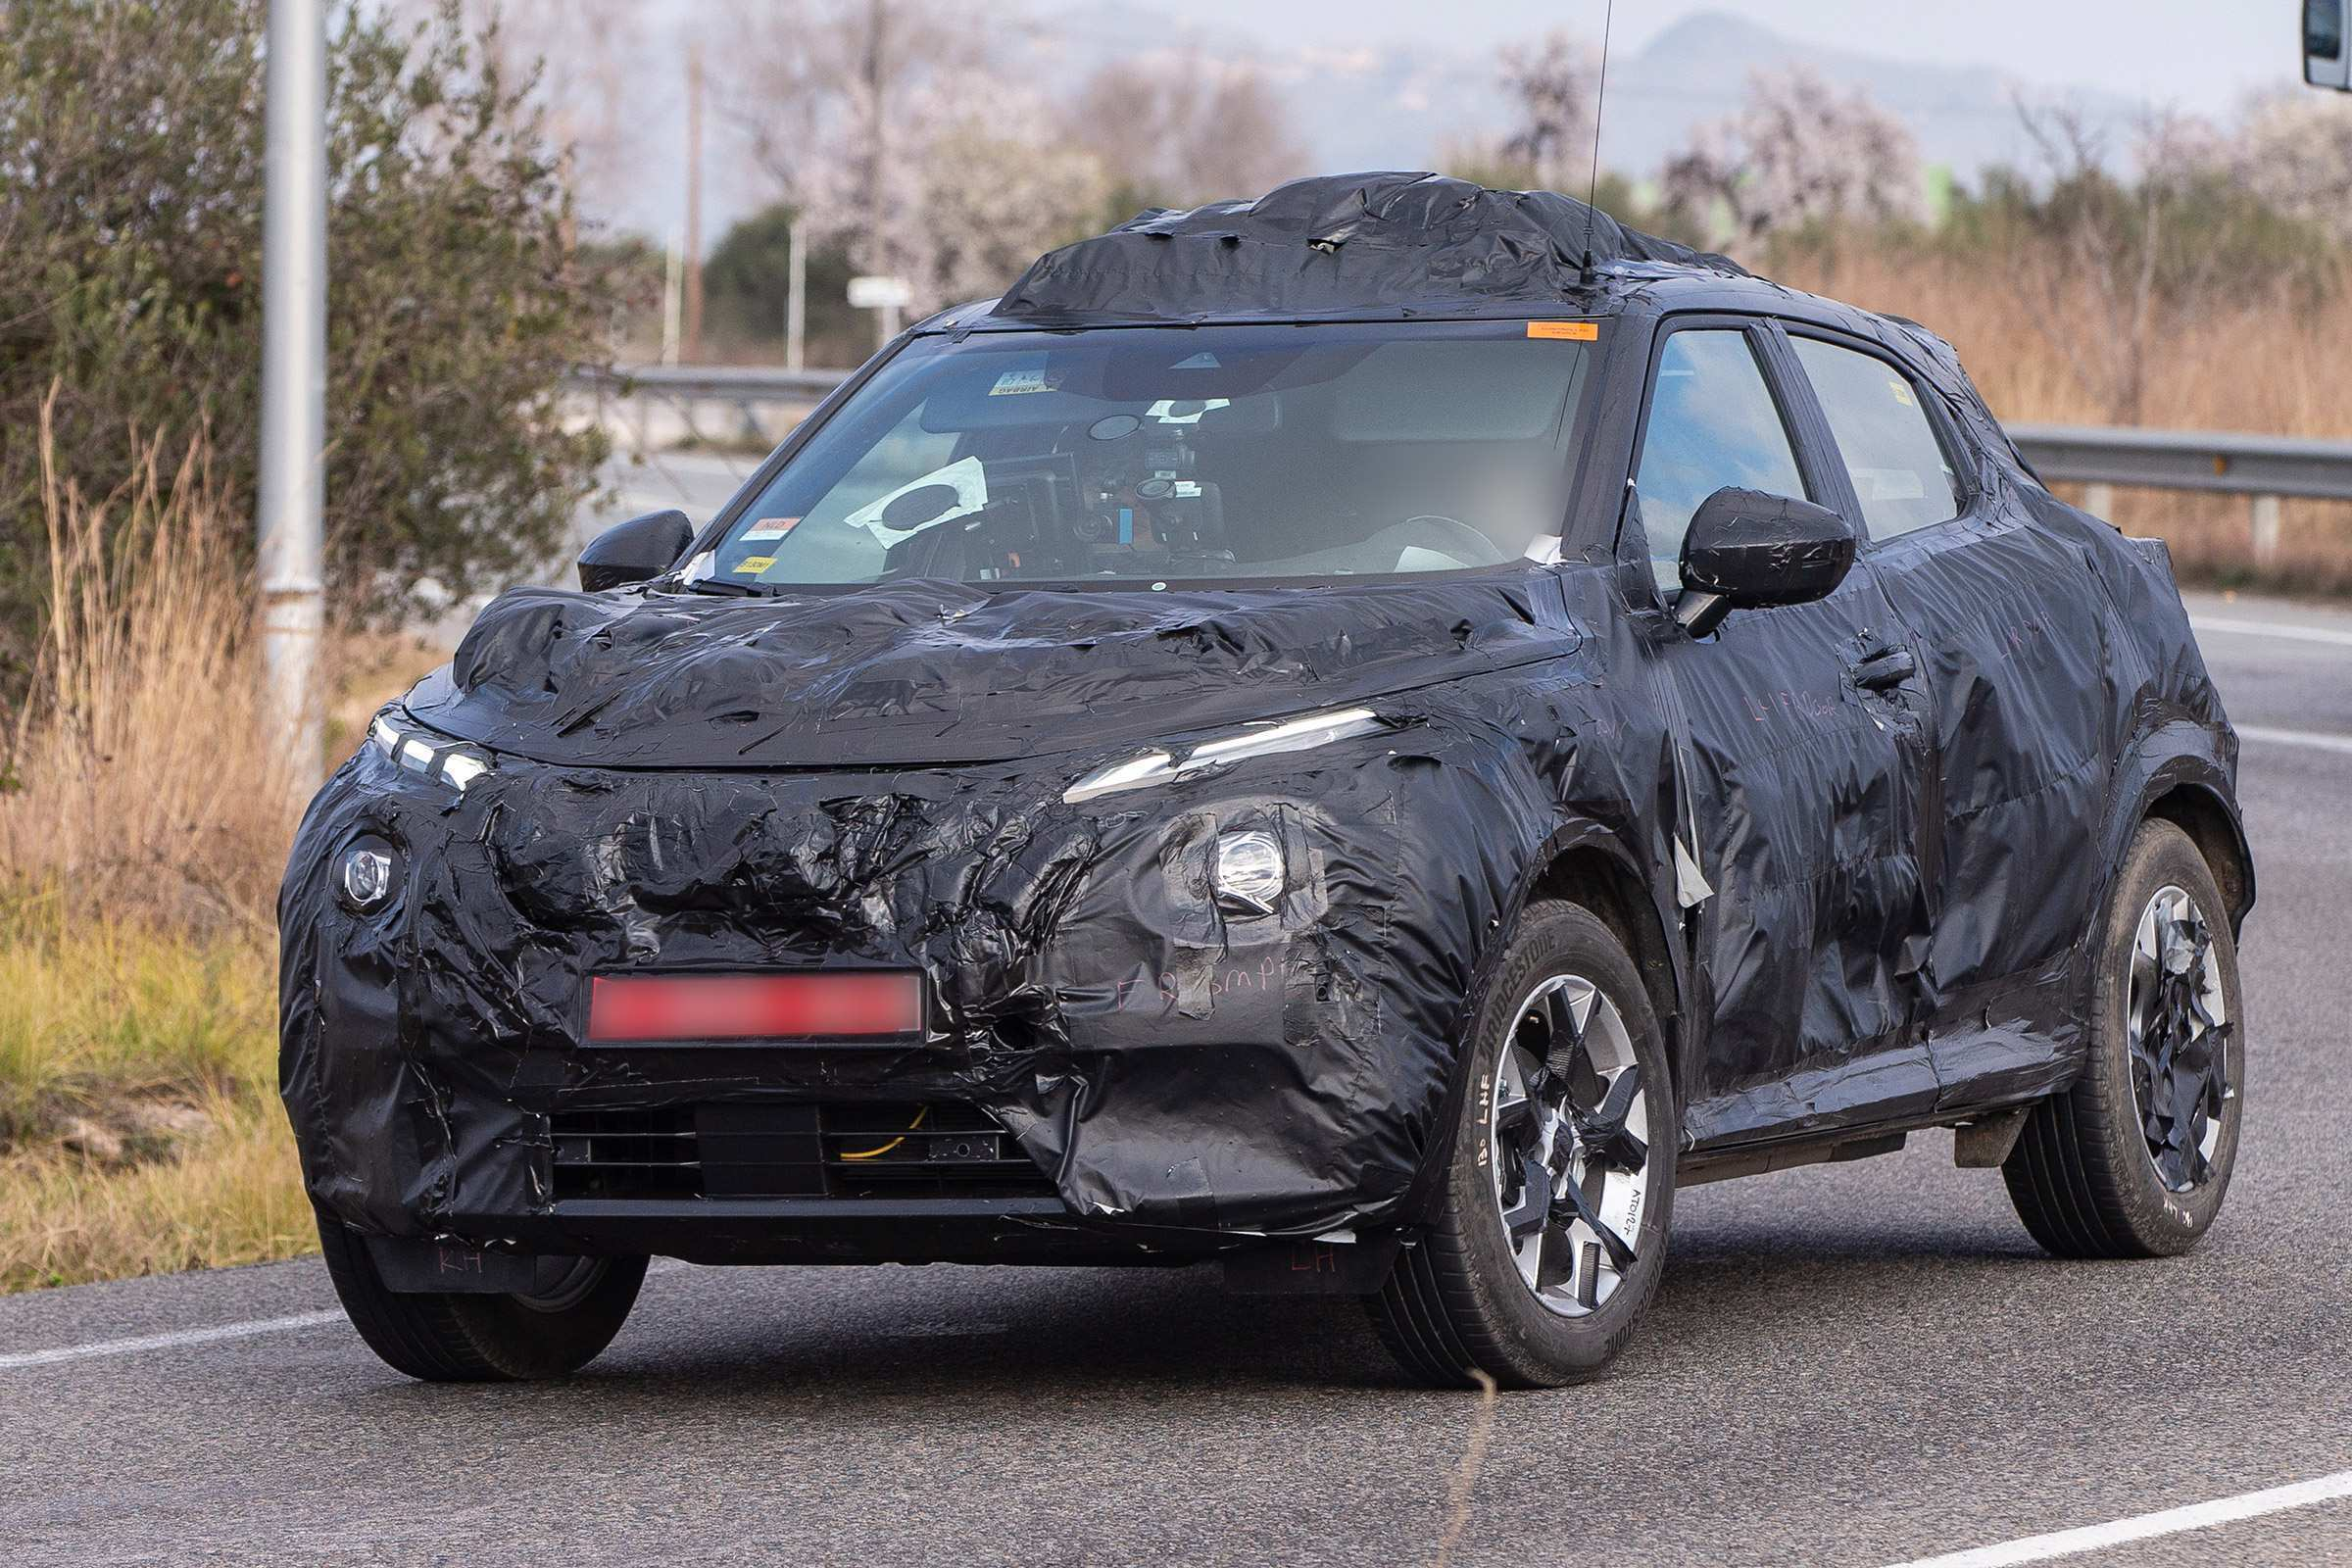 86 The Best 2019 Nissan Juke Nismo Spy Shoot Specs and Review with Best 2019 Nissan Juke Nismo Spy Shoot